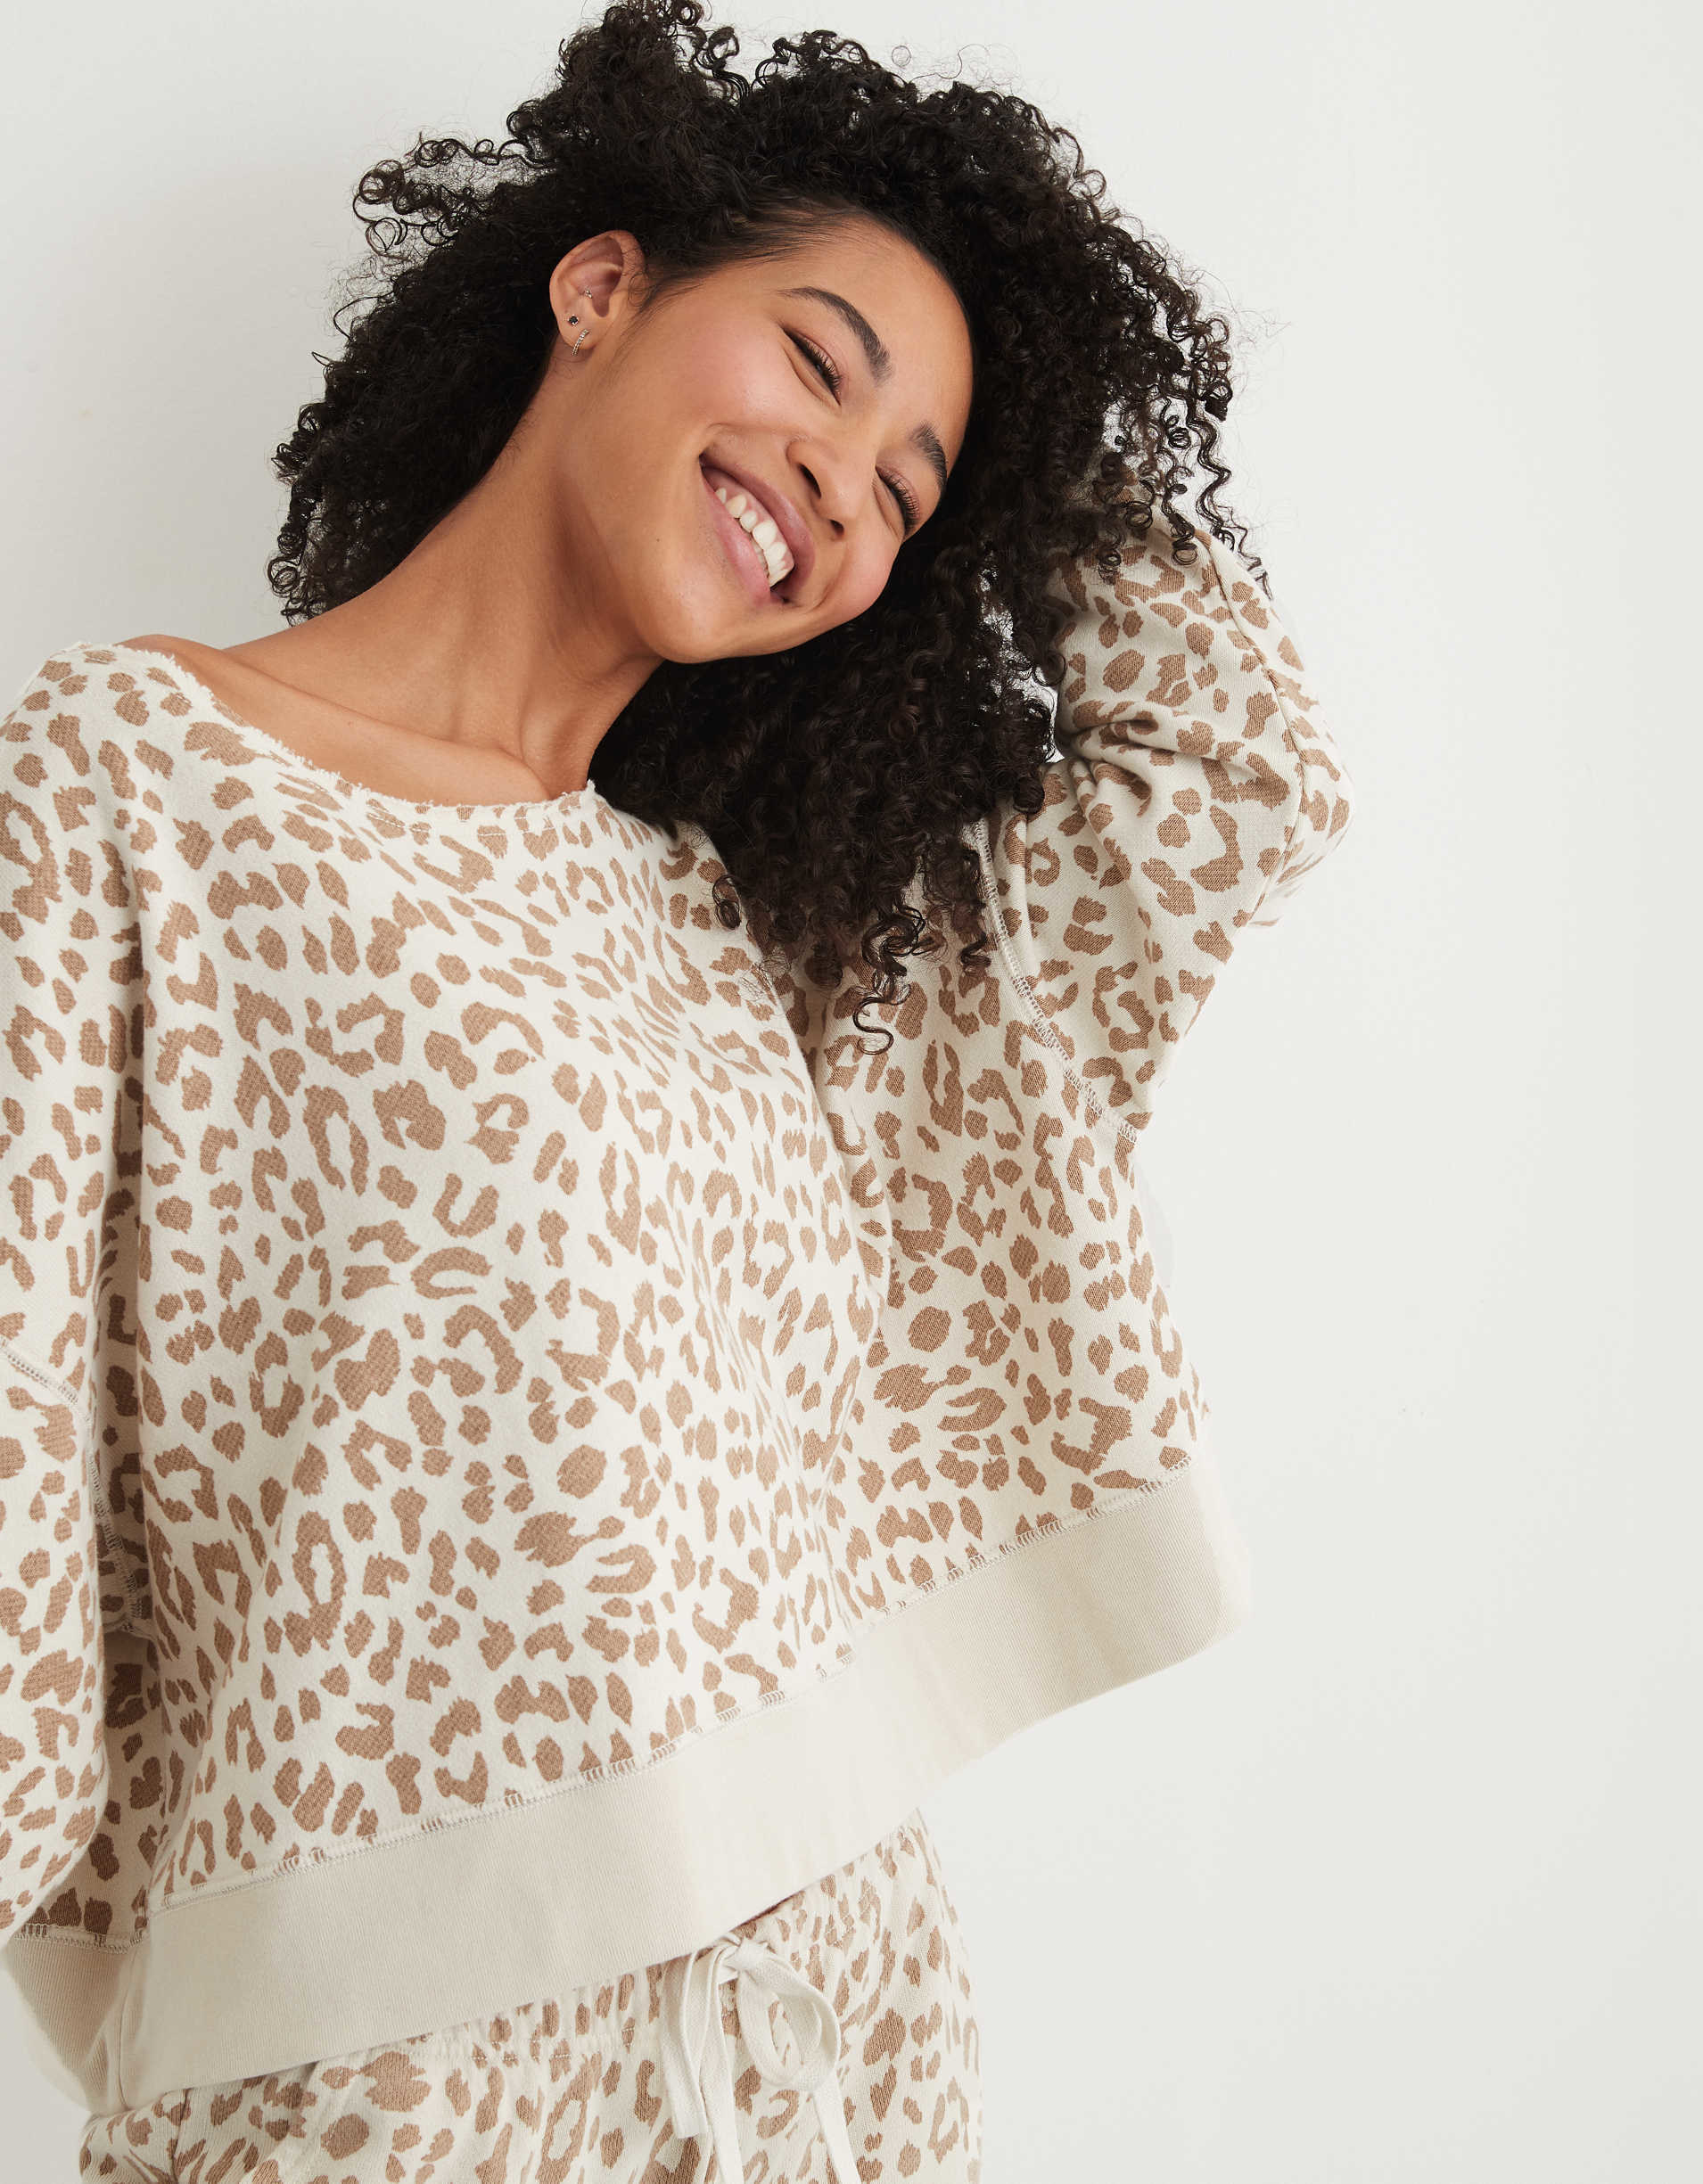 Model wearing the sweatshirt in cream with brown leopard print and a wide scoop neck